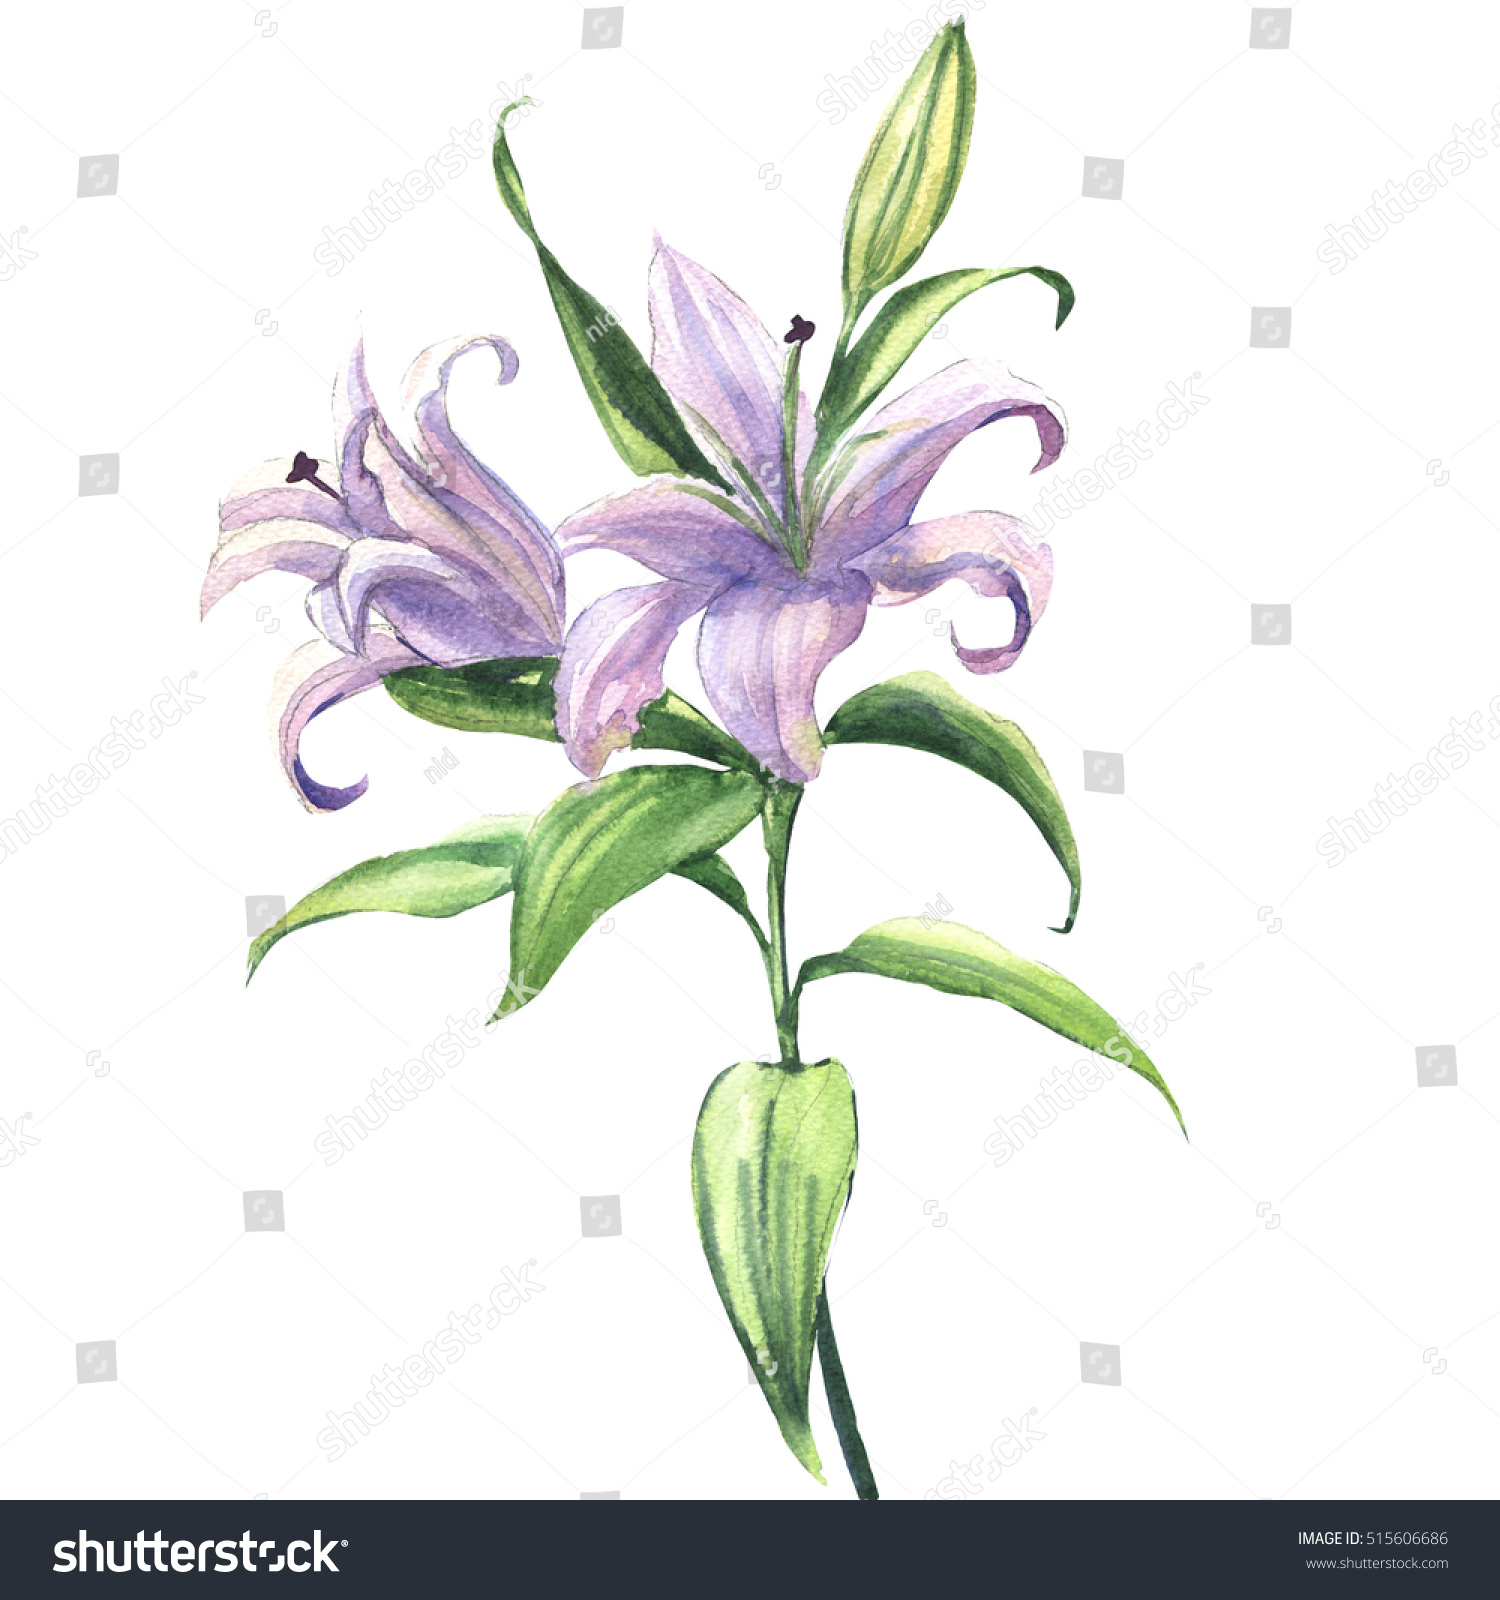 Blooming beautiful blue purple lily flower stock illustration blooming beautiful blue or purple lily flower isolated watercolor illustration izmirmasajfo